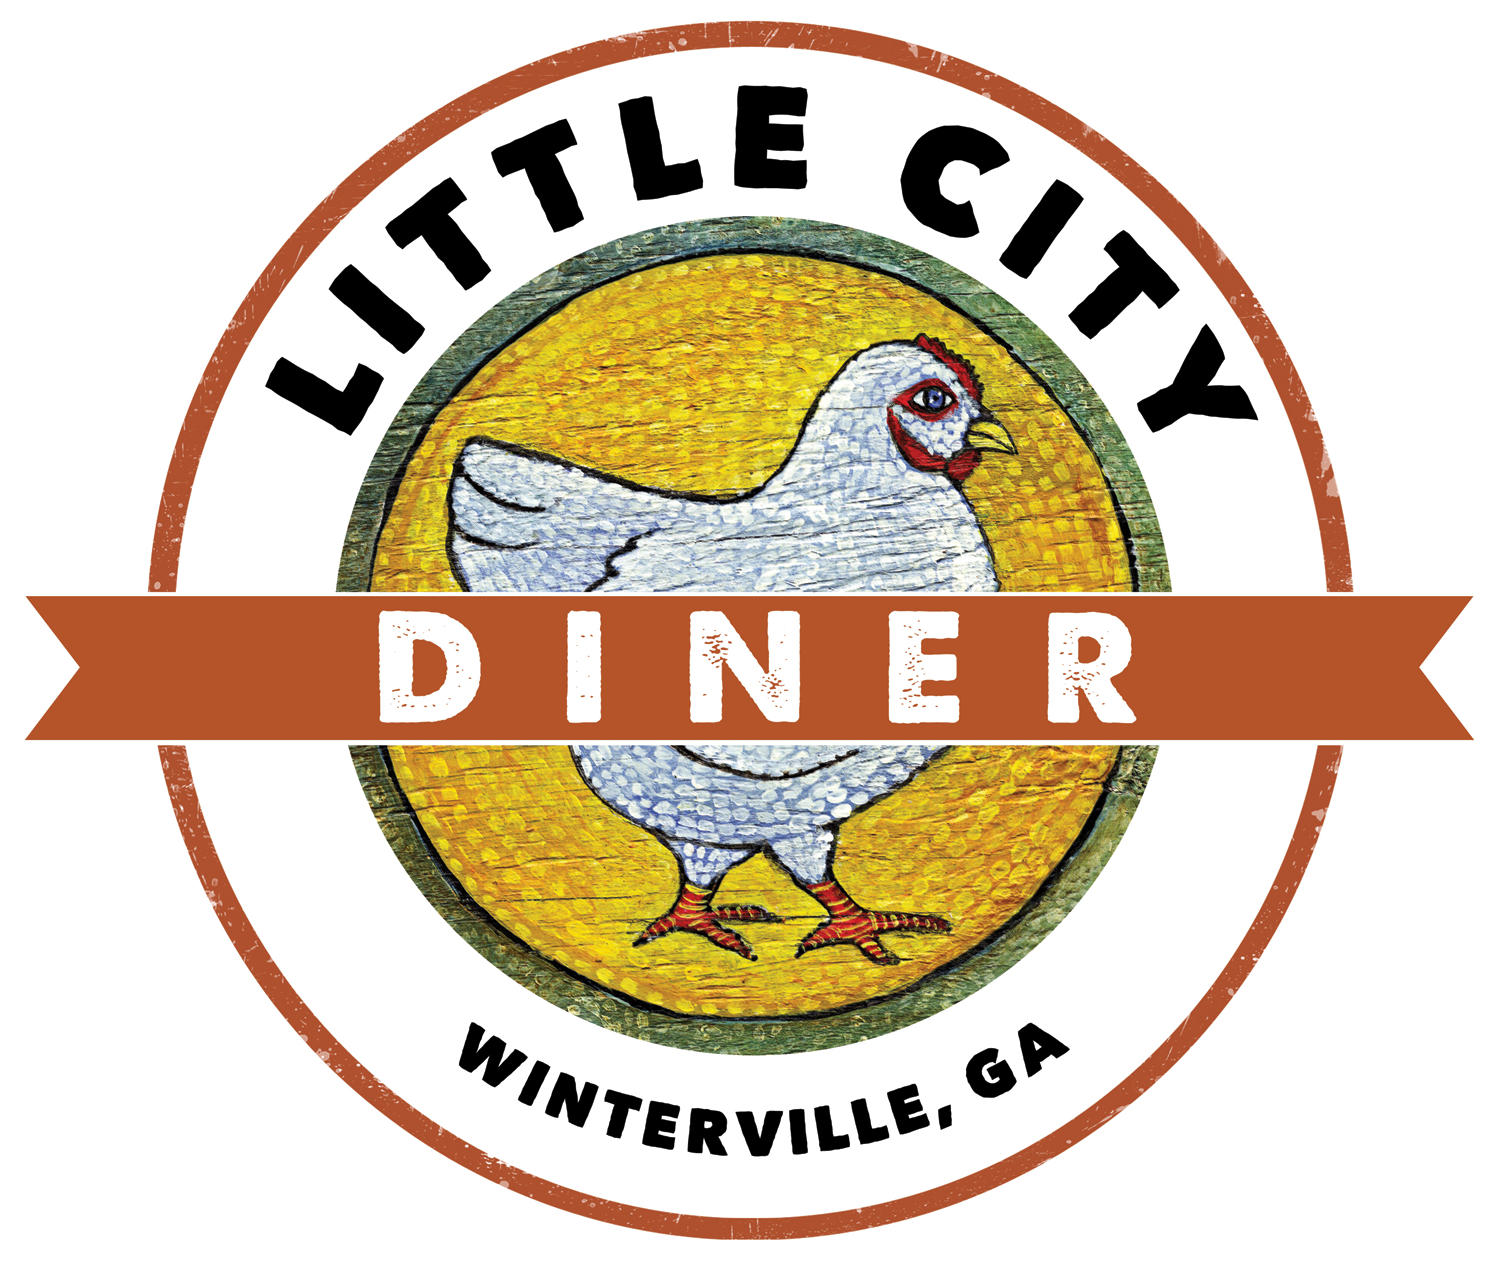 Little City Diner